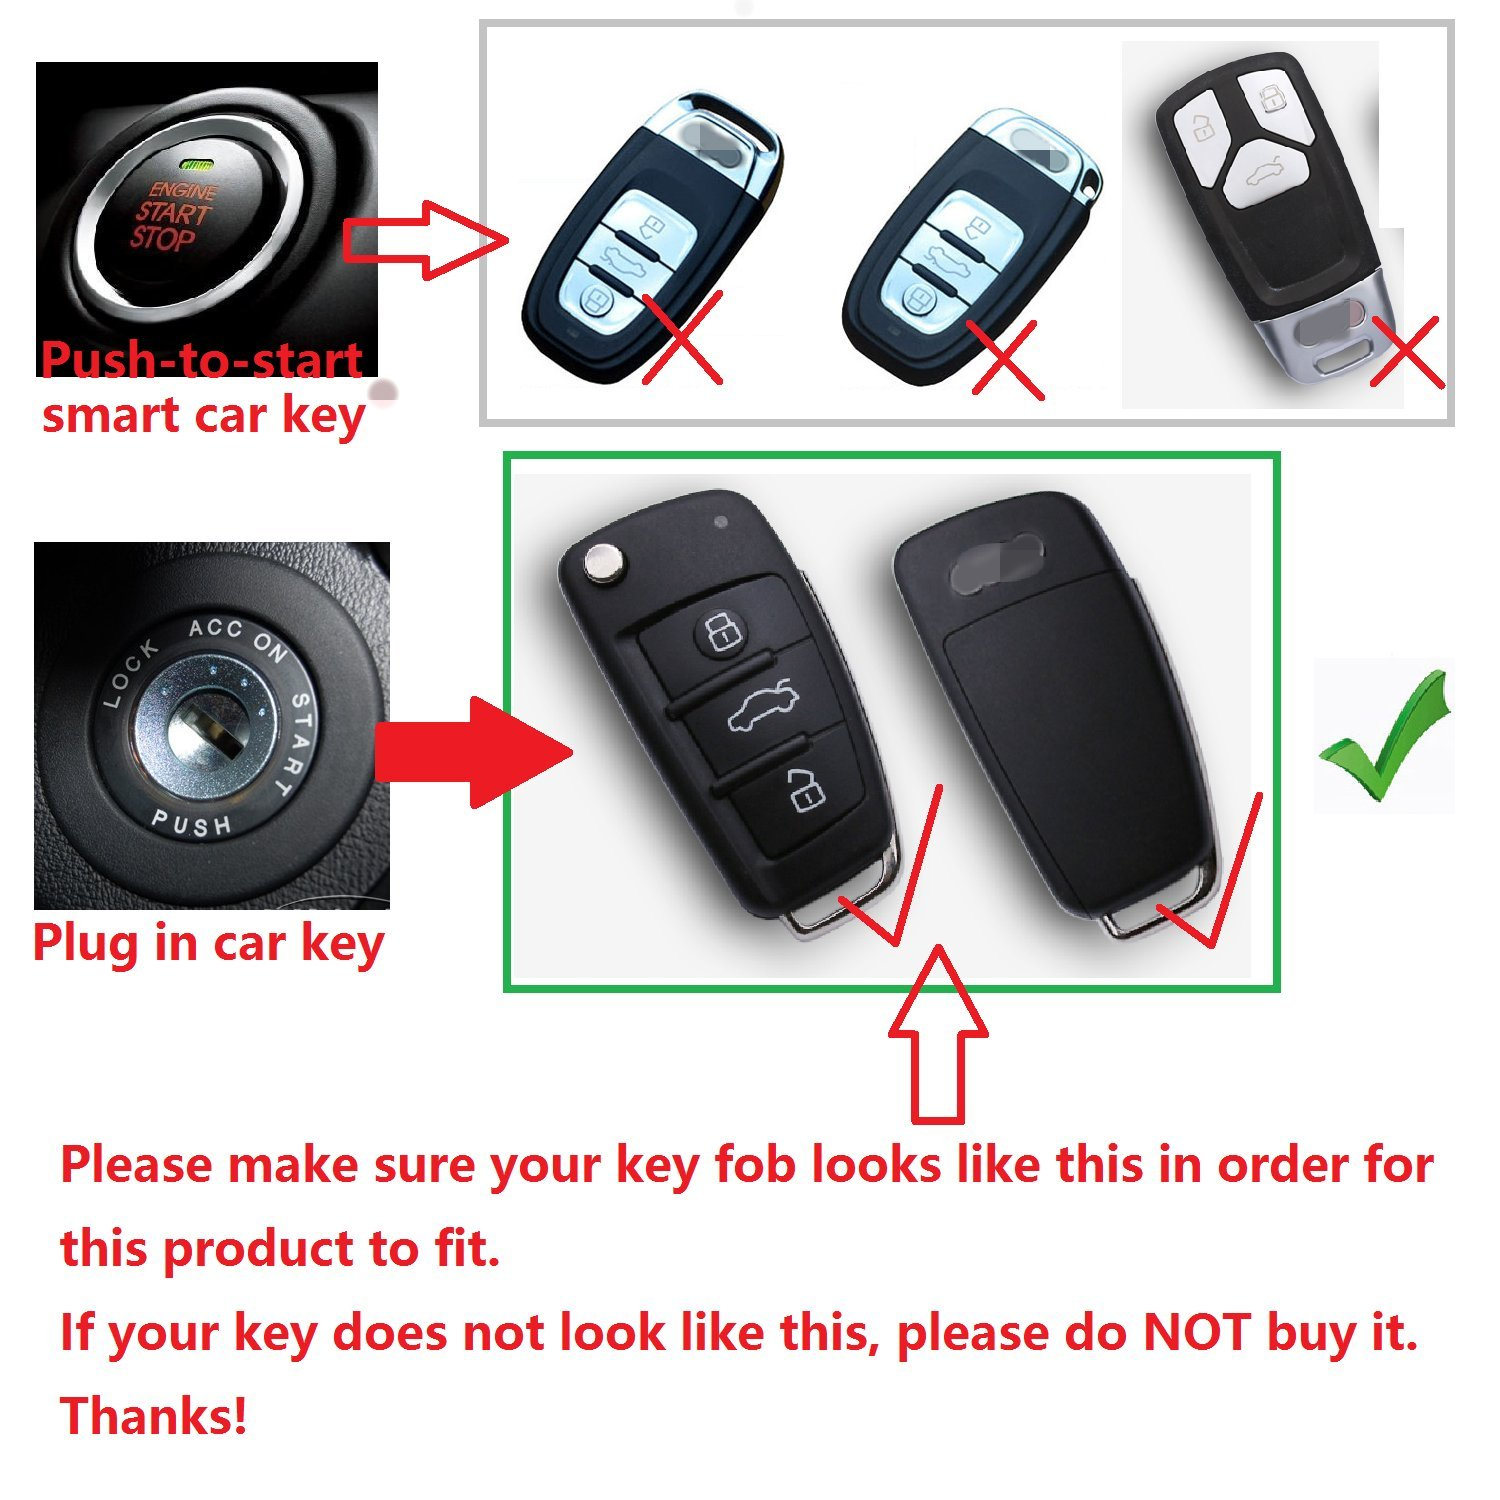 Black Round Keychain M.JVisun Soft Silicone Rubber With Carbon Fiber Texture Pattern Cover Protector For Audi Key Fob Car Keyless Entry Remote Key Fob Case For Audi A1 A3 S3 Q3 Q7 R8 TT Fob Key